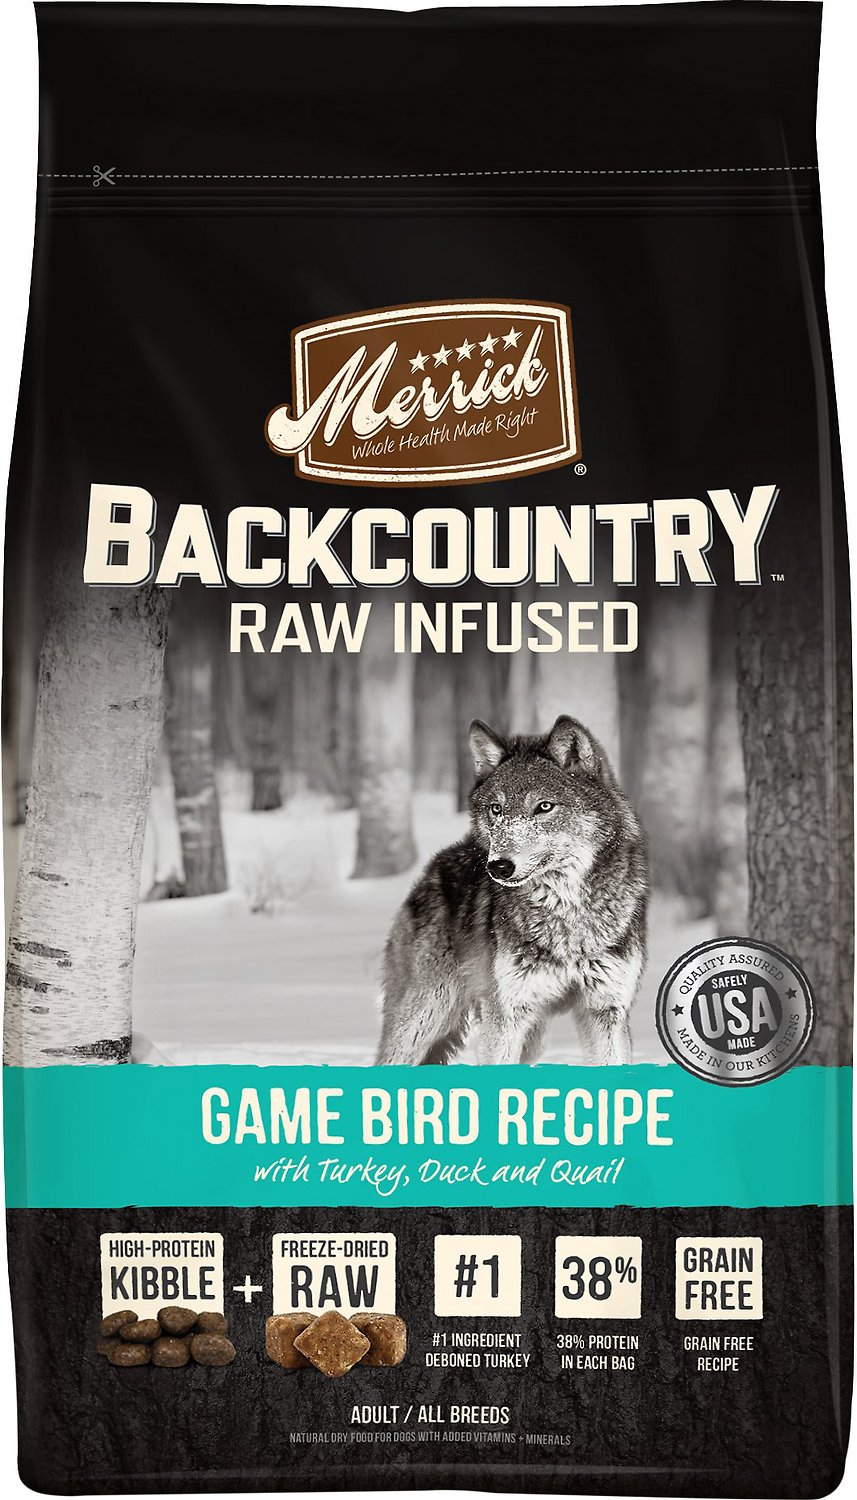 Merrick Backcountry Raw Infused Game Bird Recipe with Turkey, Duck & Quail Grain-Free Dry Dog Food Image